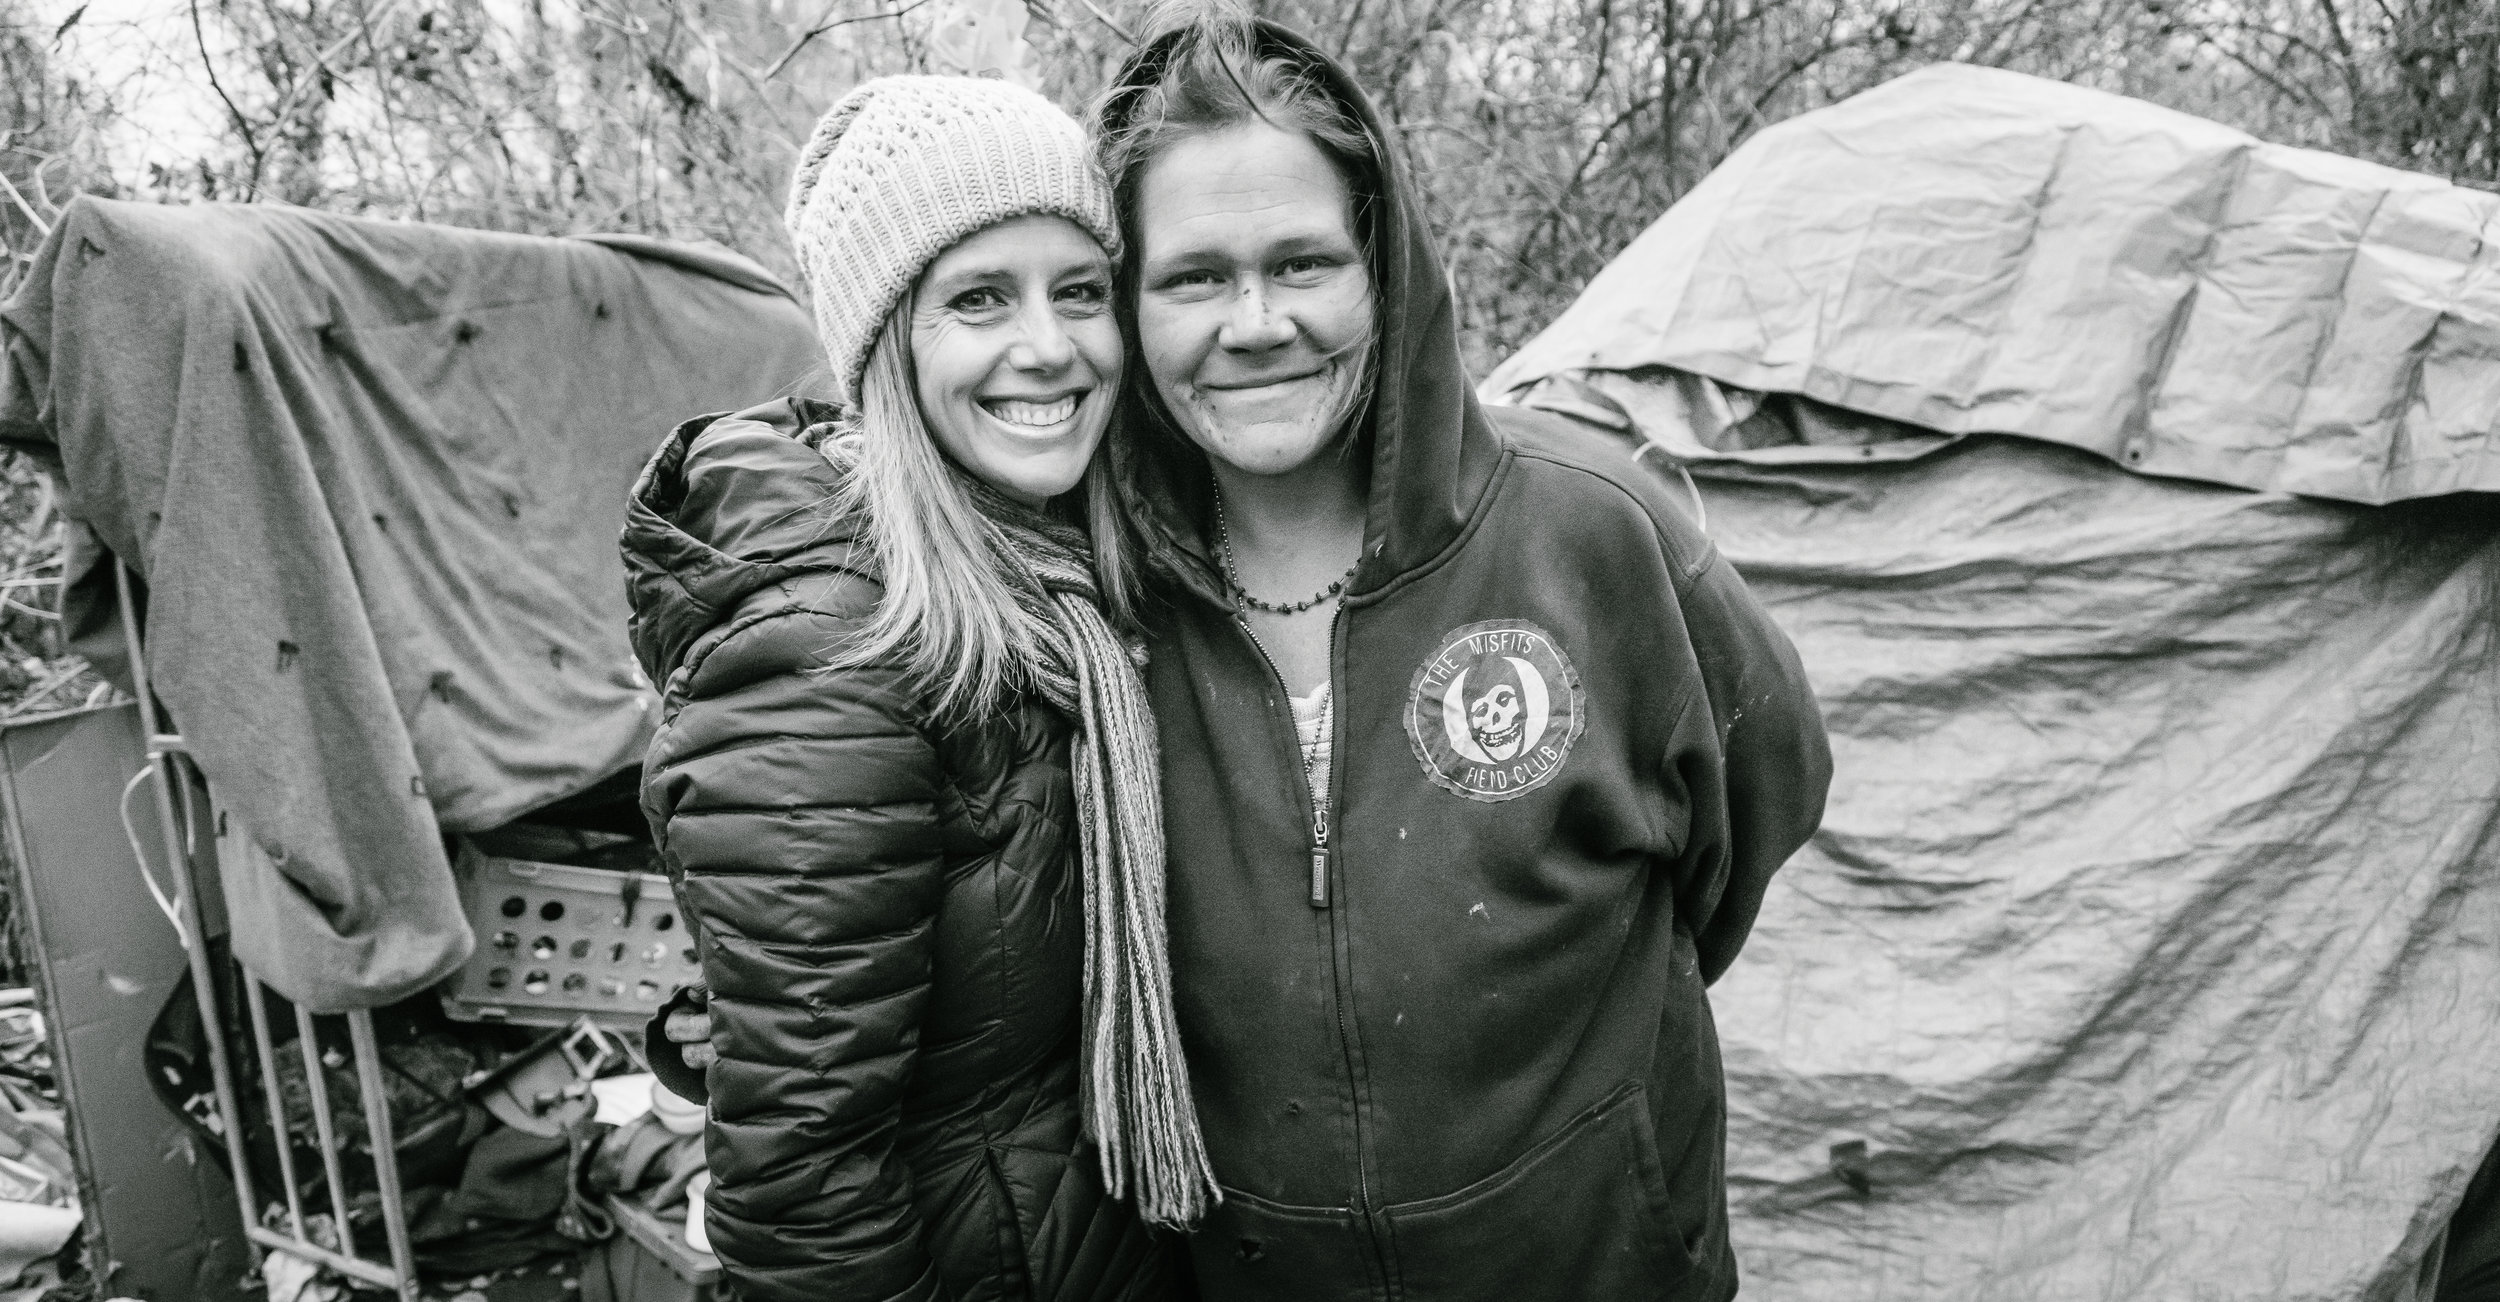 Dawn with Jakki at her homeless camp